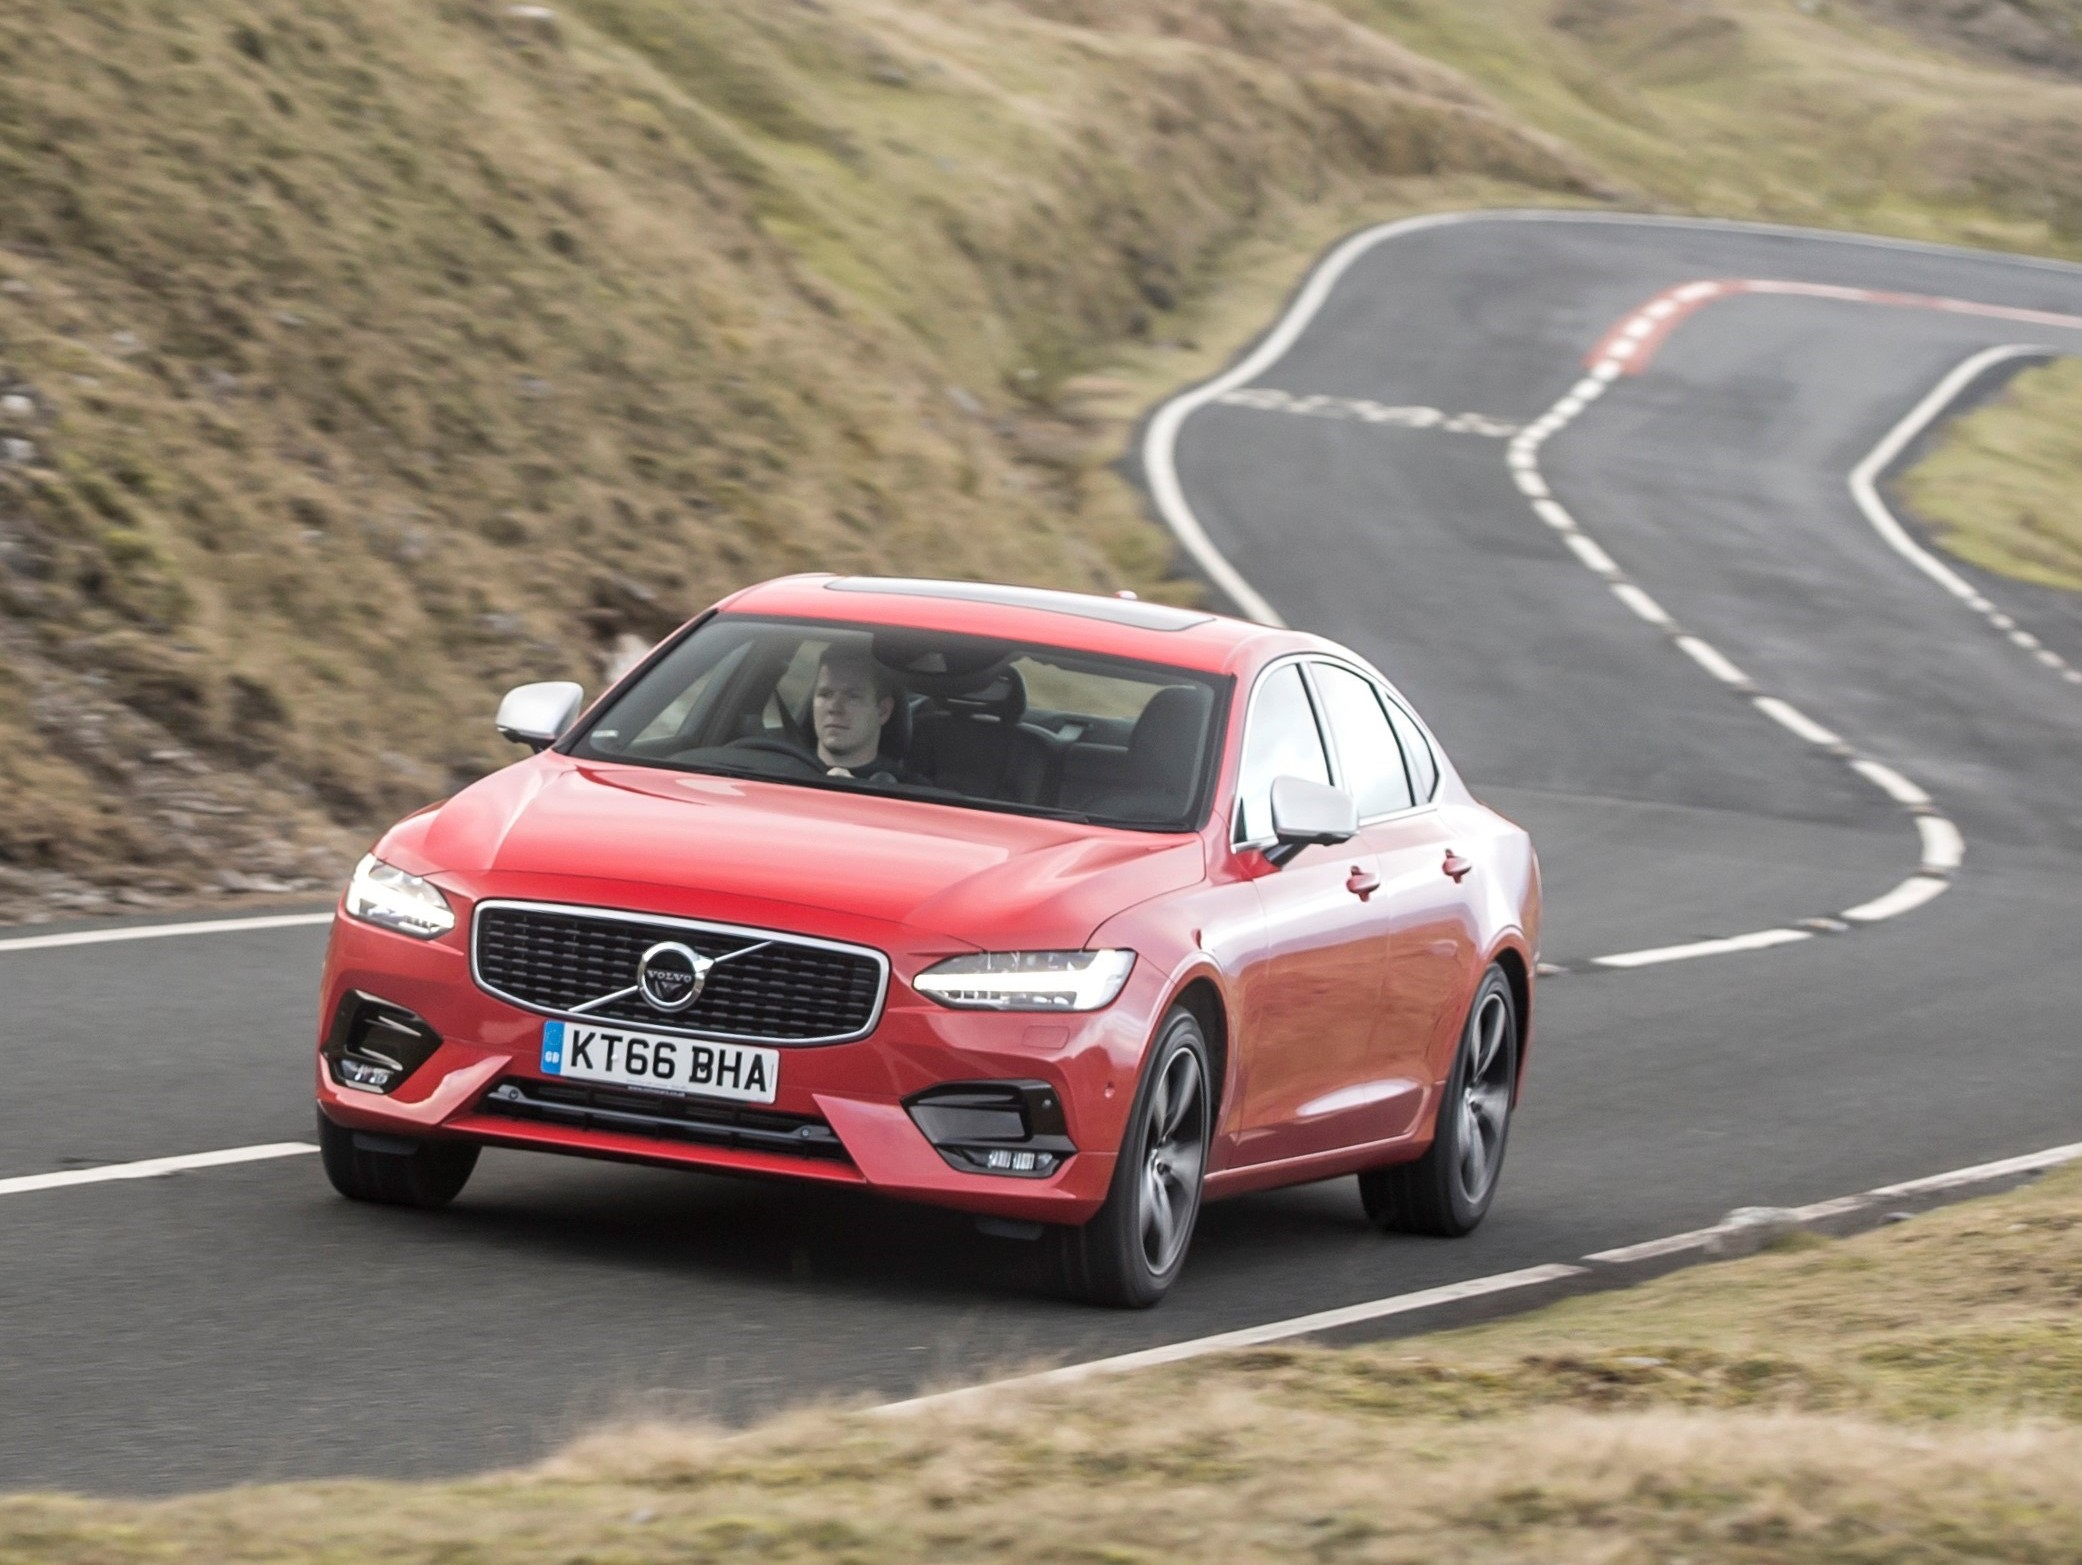 Volvo S90 D5 PowerPulse AWD Inscription road test report and review